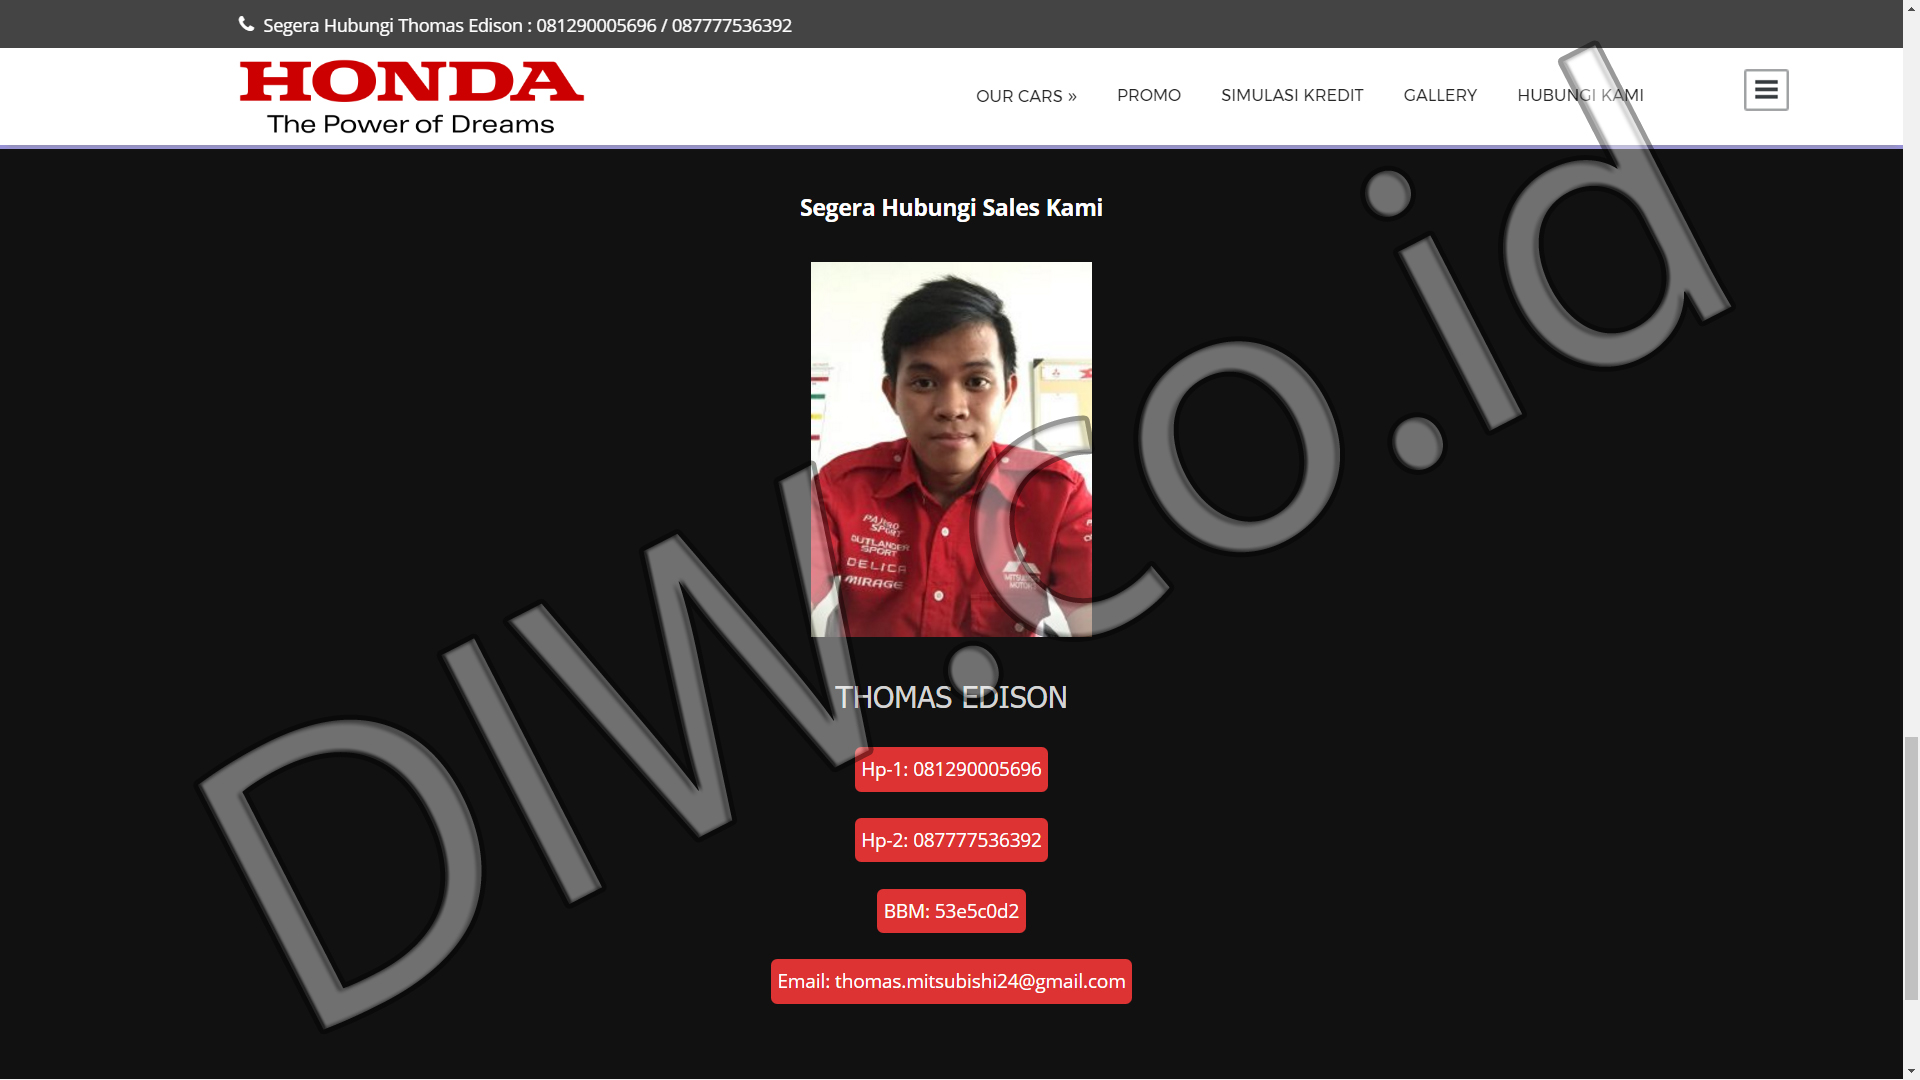 Portfolio 2 - Promo Honda Mobil - Andri Sunardi - Freelancer - Web Developer - CEO DIW.co.id